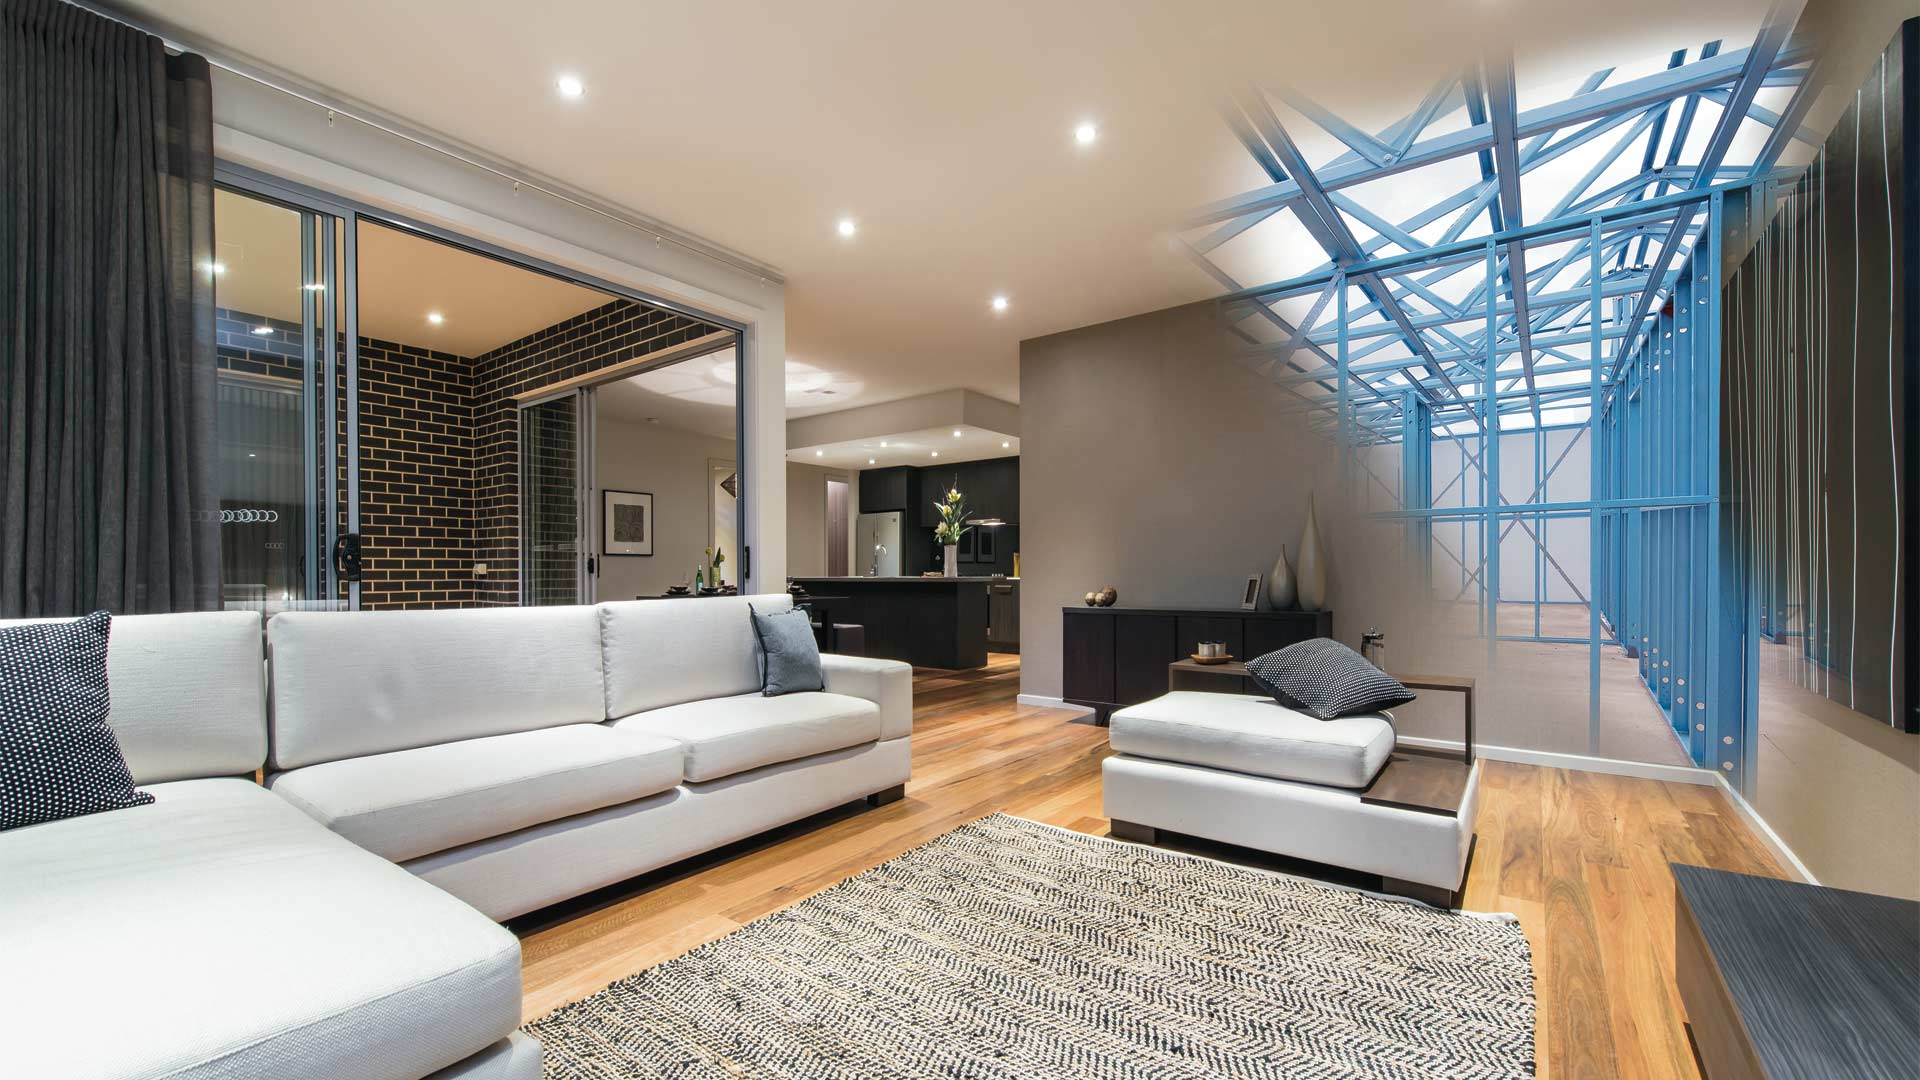 Suppliers of Steel Frame Home Building Systems | Supaloc